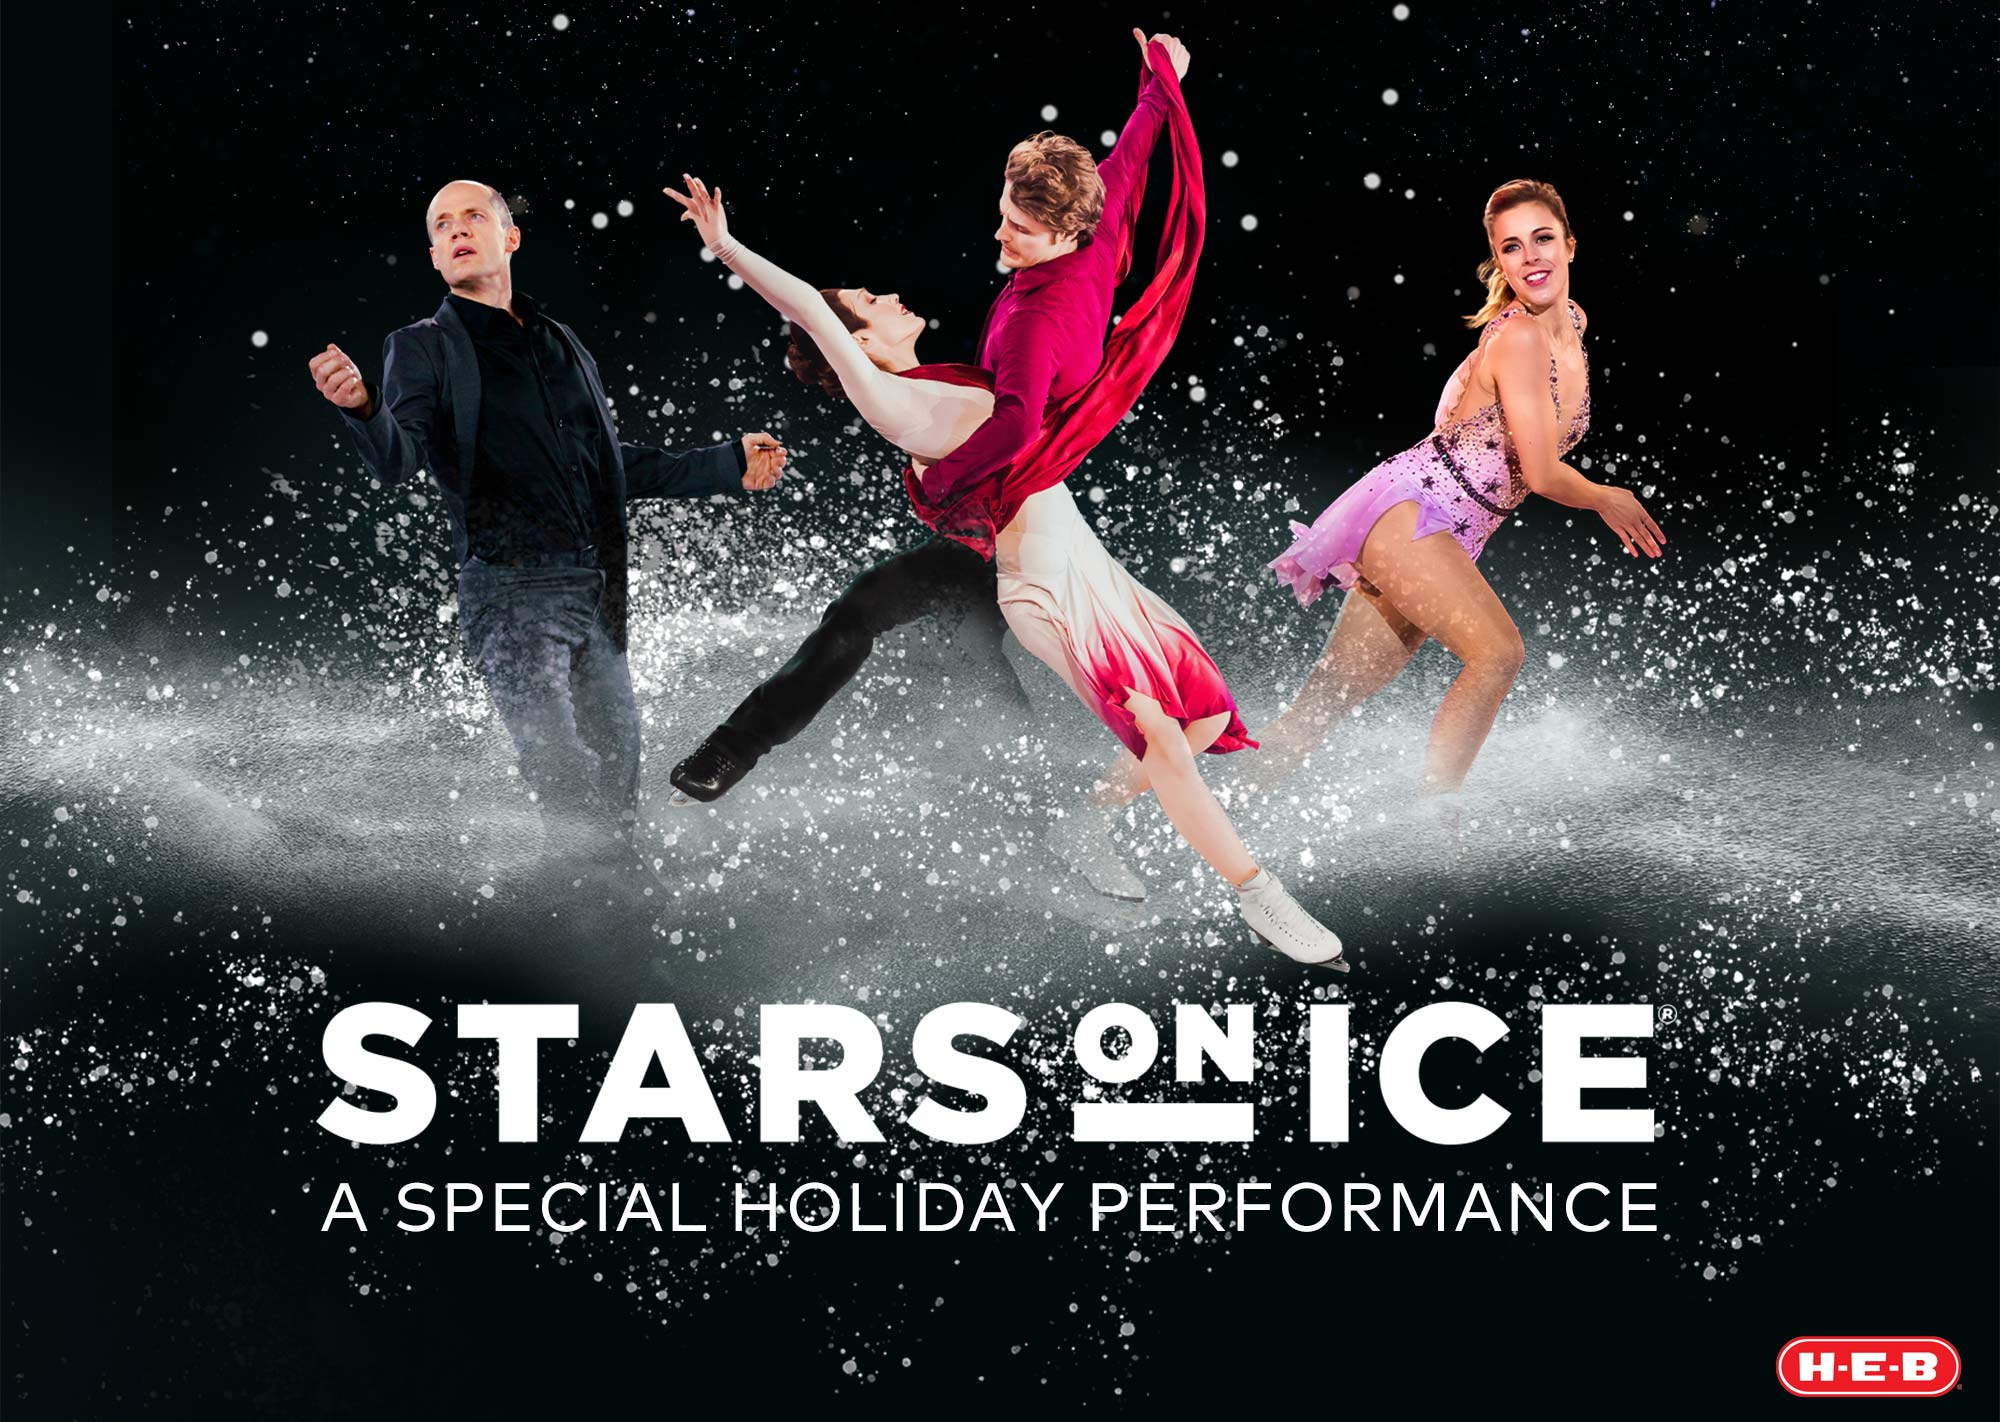 STARS ON ICE DELIVERS OLYMPIC, WORLD AND NATIONAL CHAMPIONS THIS HOLIDAY SEASON TO THE  AUSTIN AREA DECEMBER 15